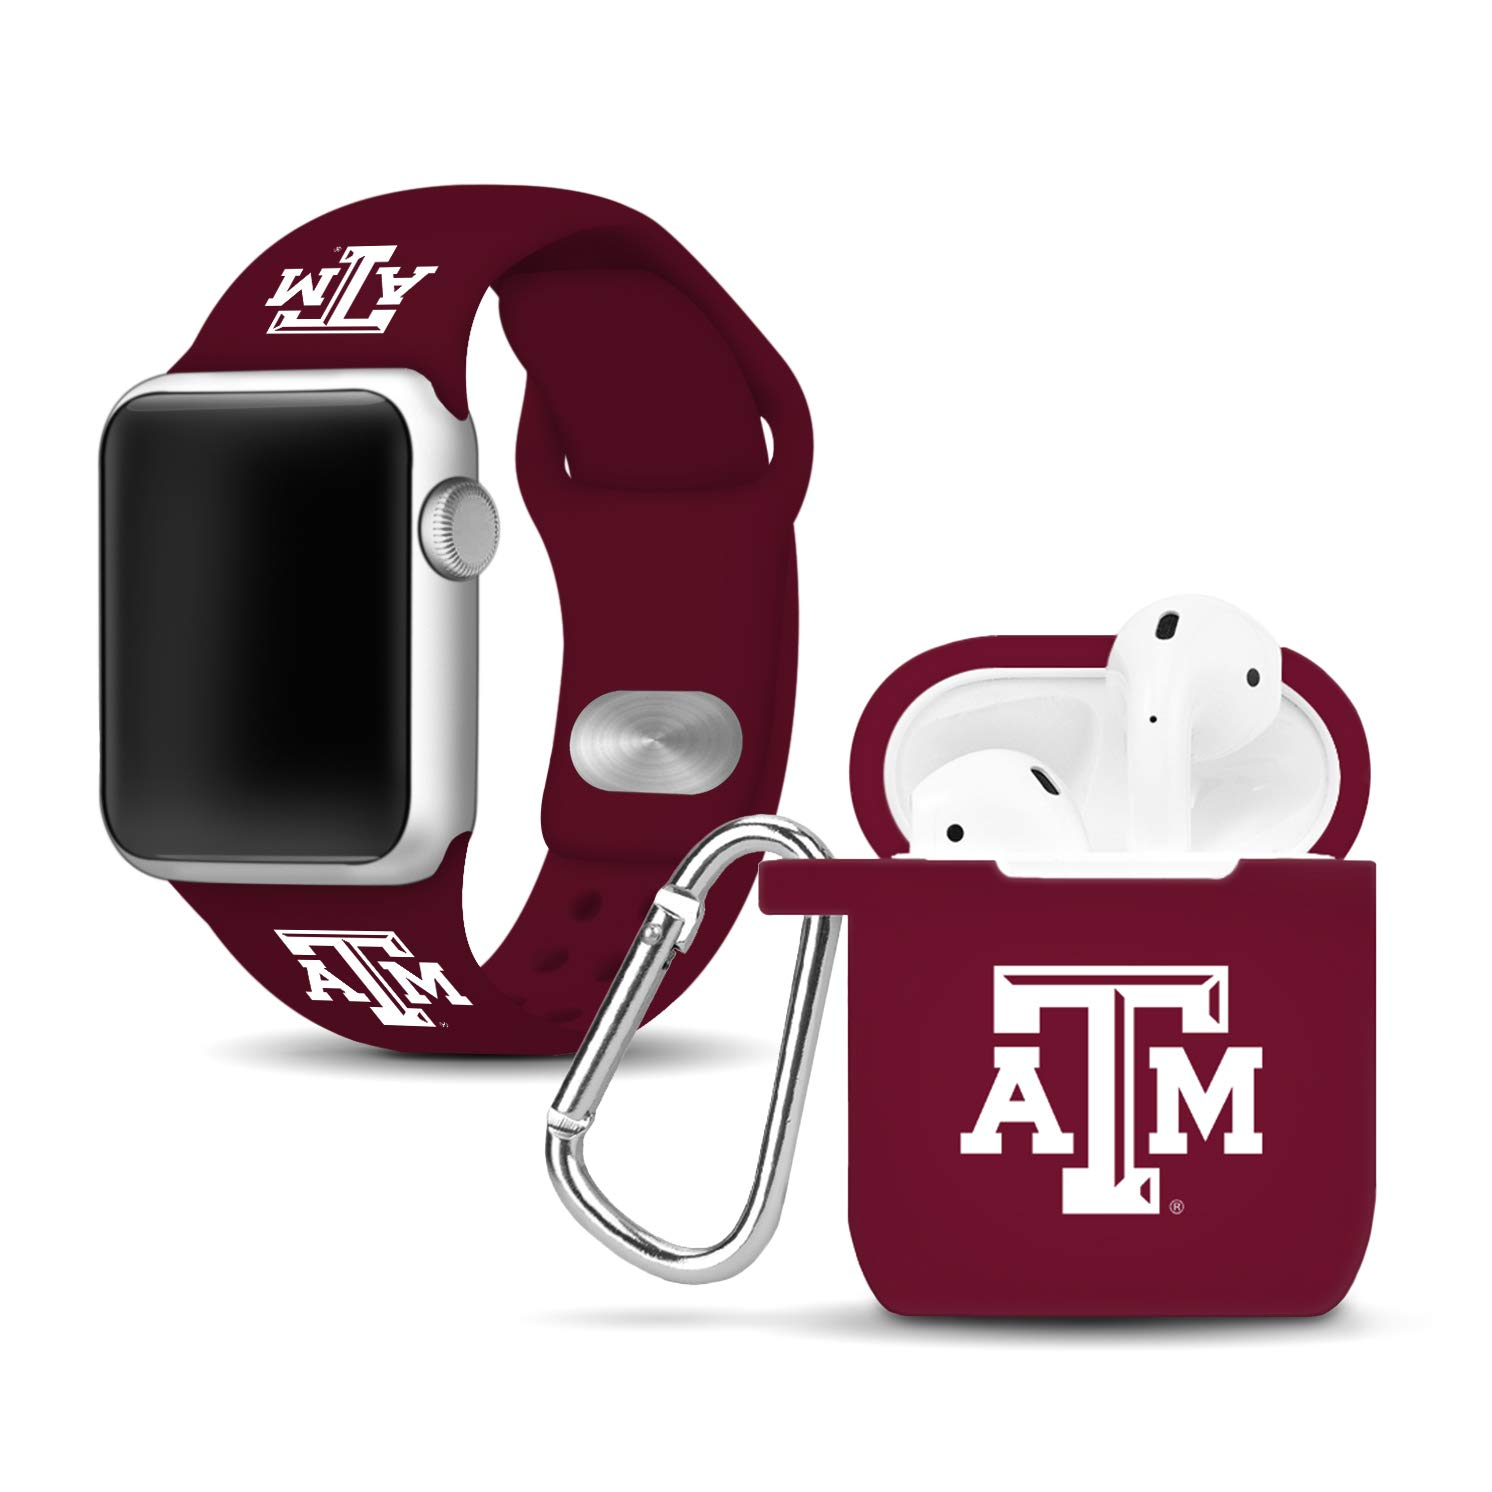 Affinity Bands Texas A&M Aggies Silicone Watch Band and Case Cover Combo Compatible with Apple Watch and AirPod Case by Affinity Bands